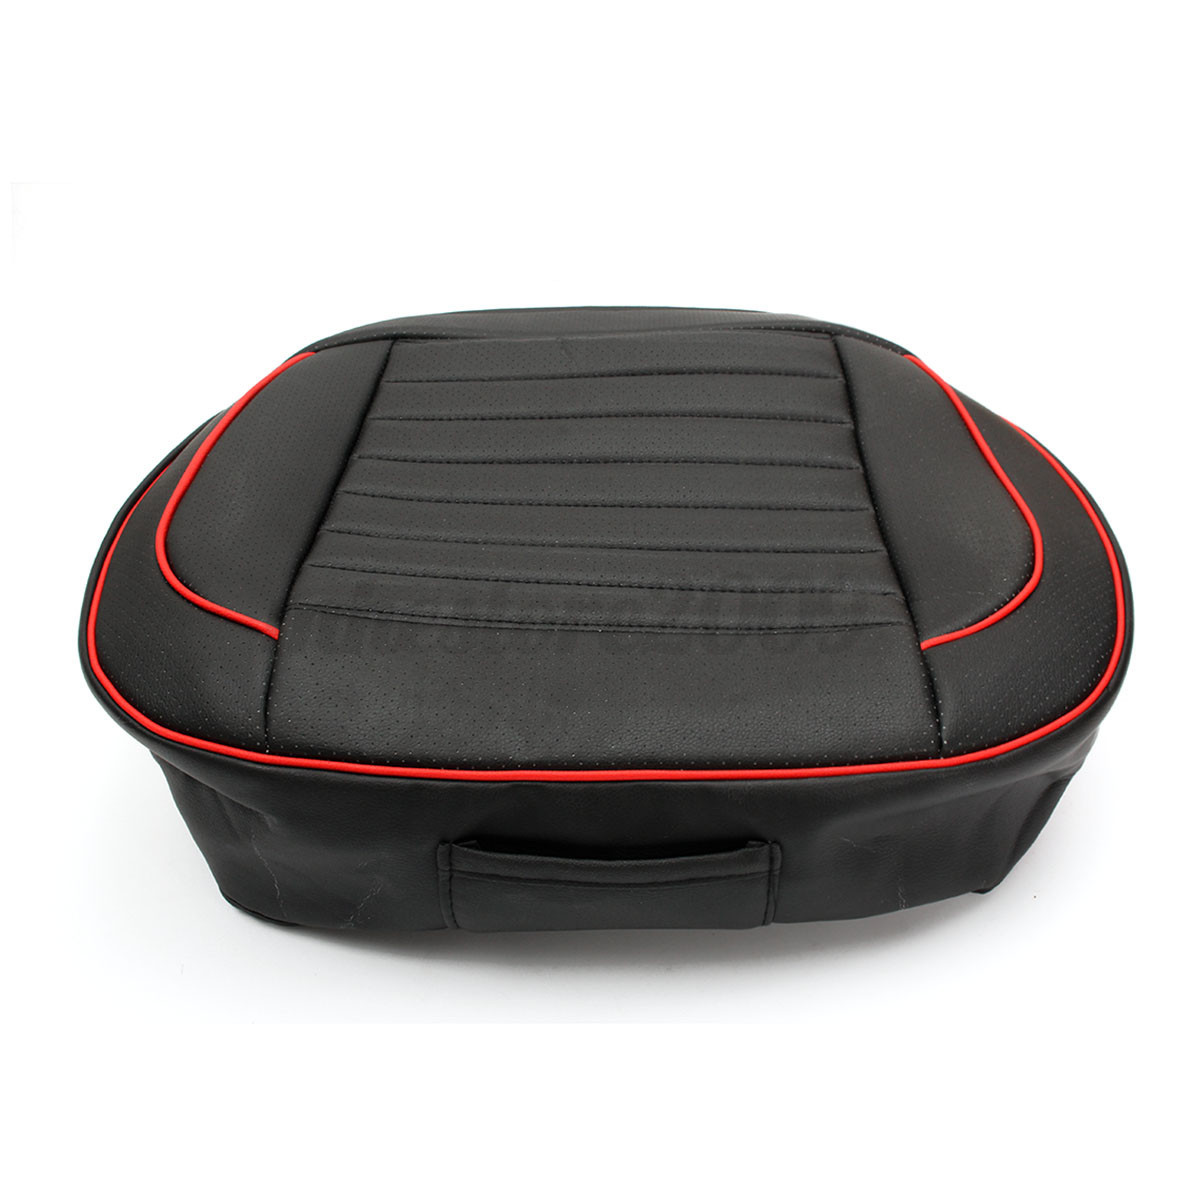 pu leather car seats protector mat cover auto seat cover pad breathable cushion ebay. Black Bedroom Furniture Sets. Home Design Ideas